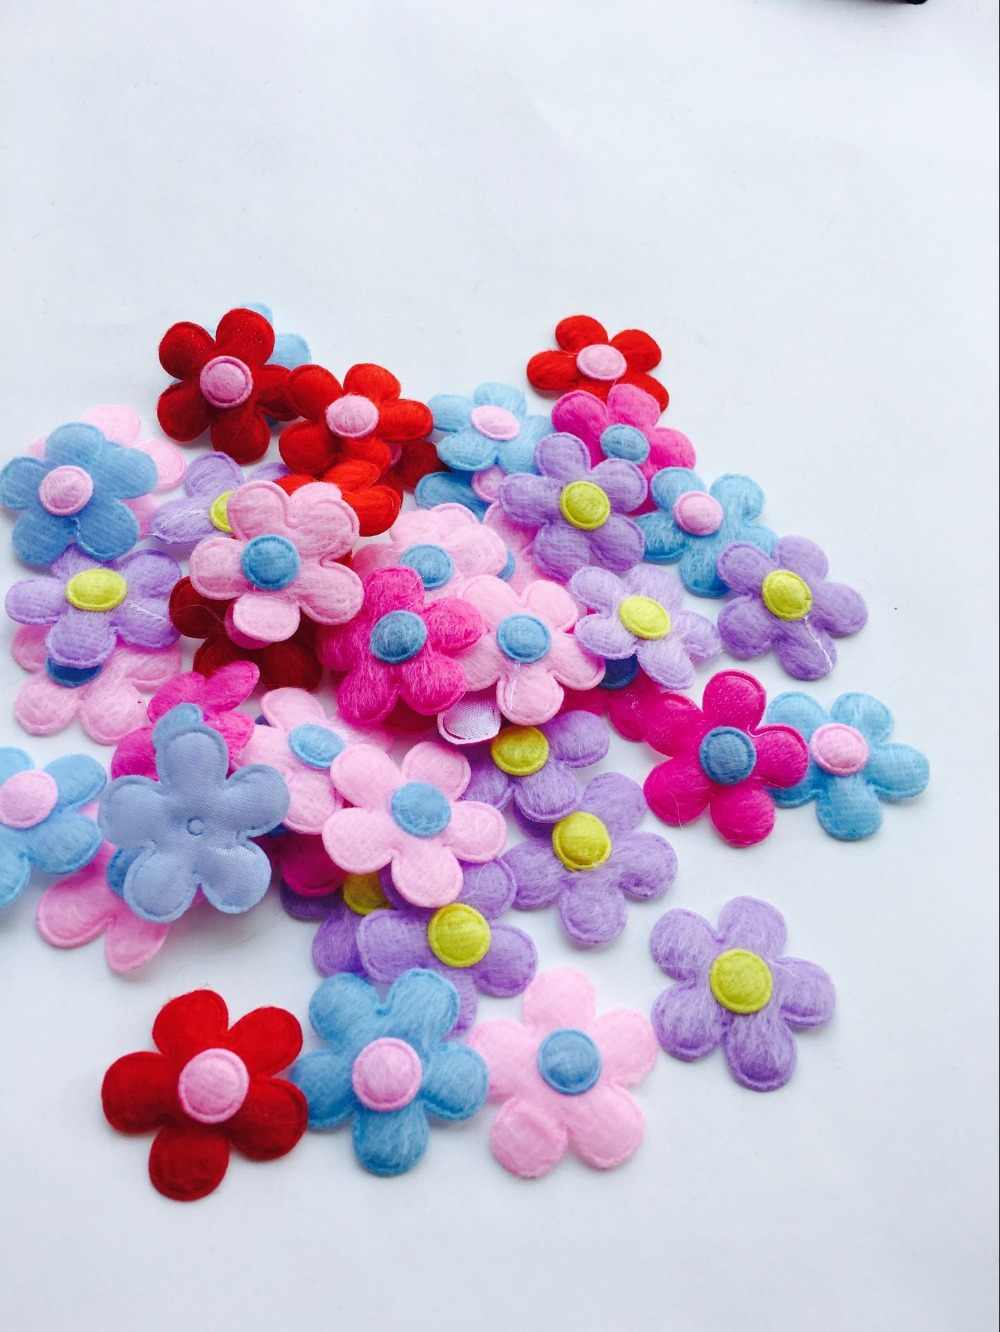 90636287c Detail Feedback Questions about 14mm Resin Flower Flatback Buttons ...